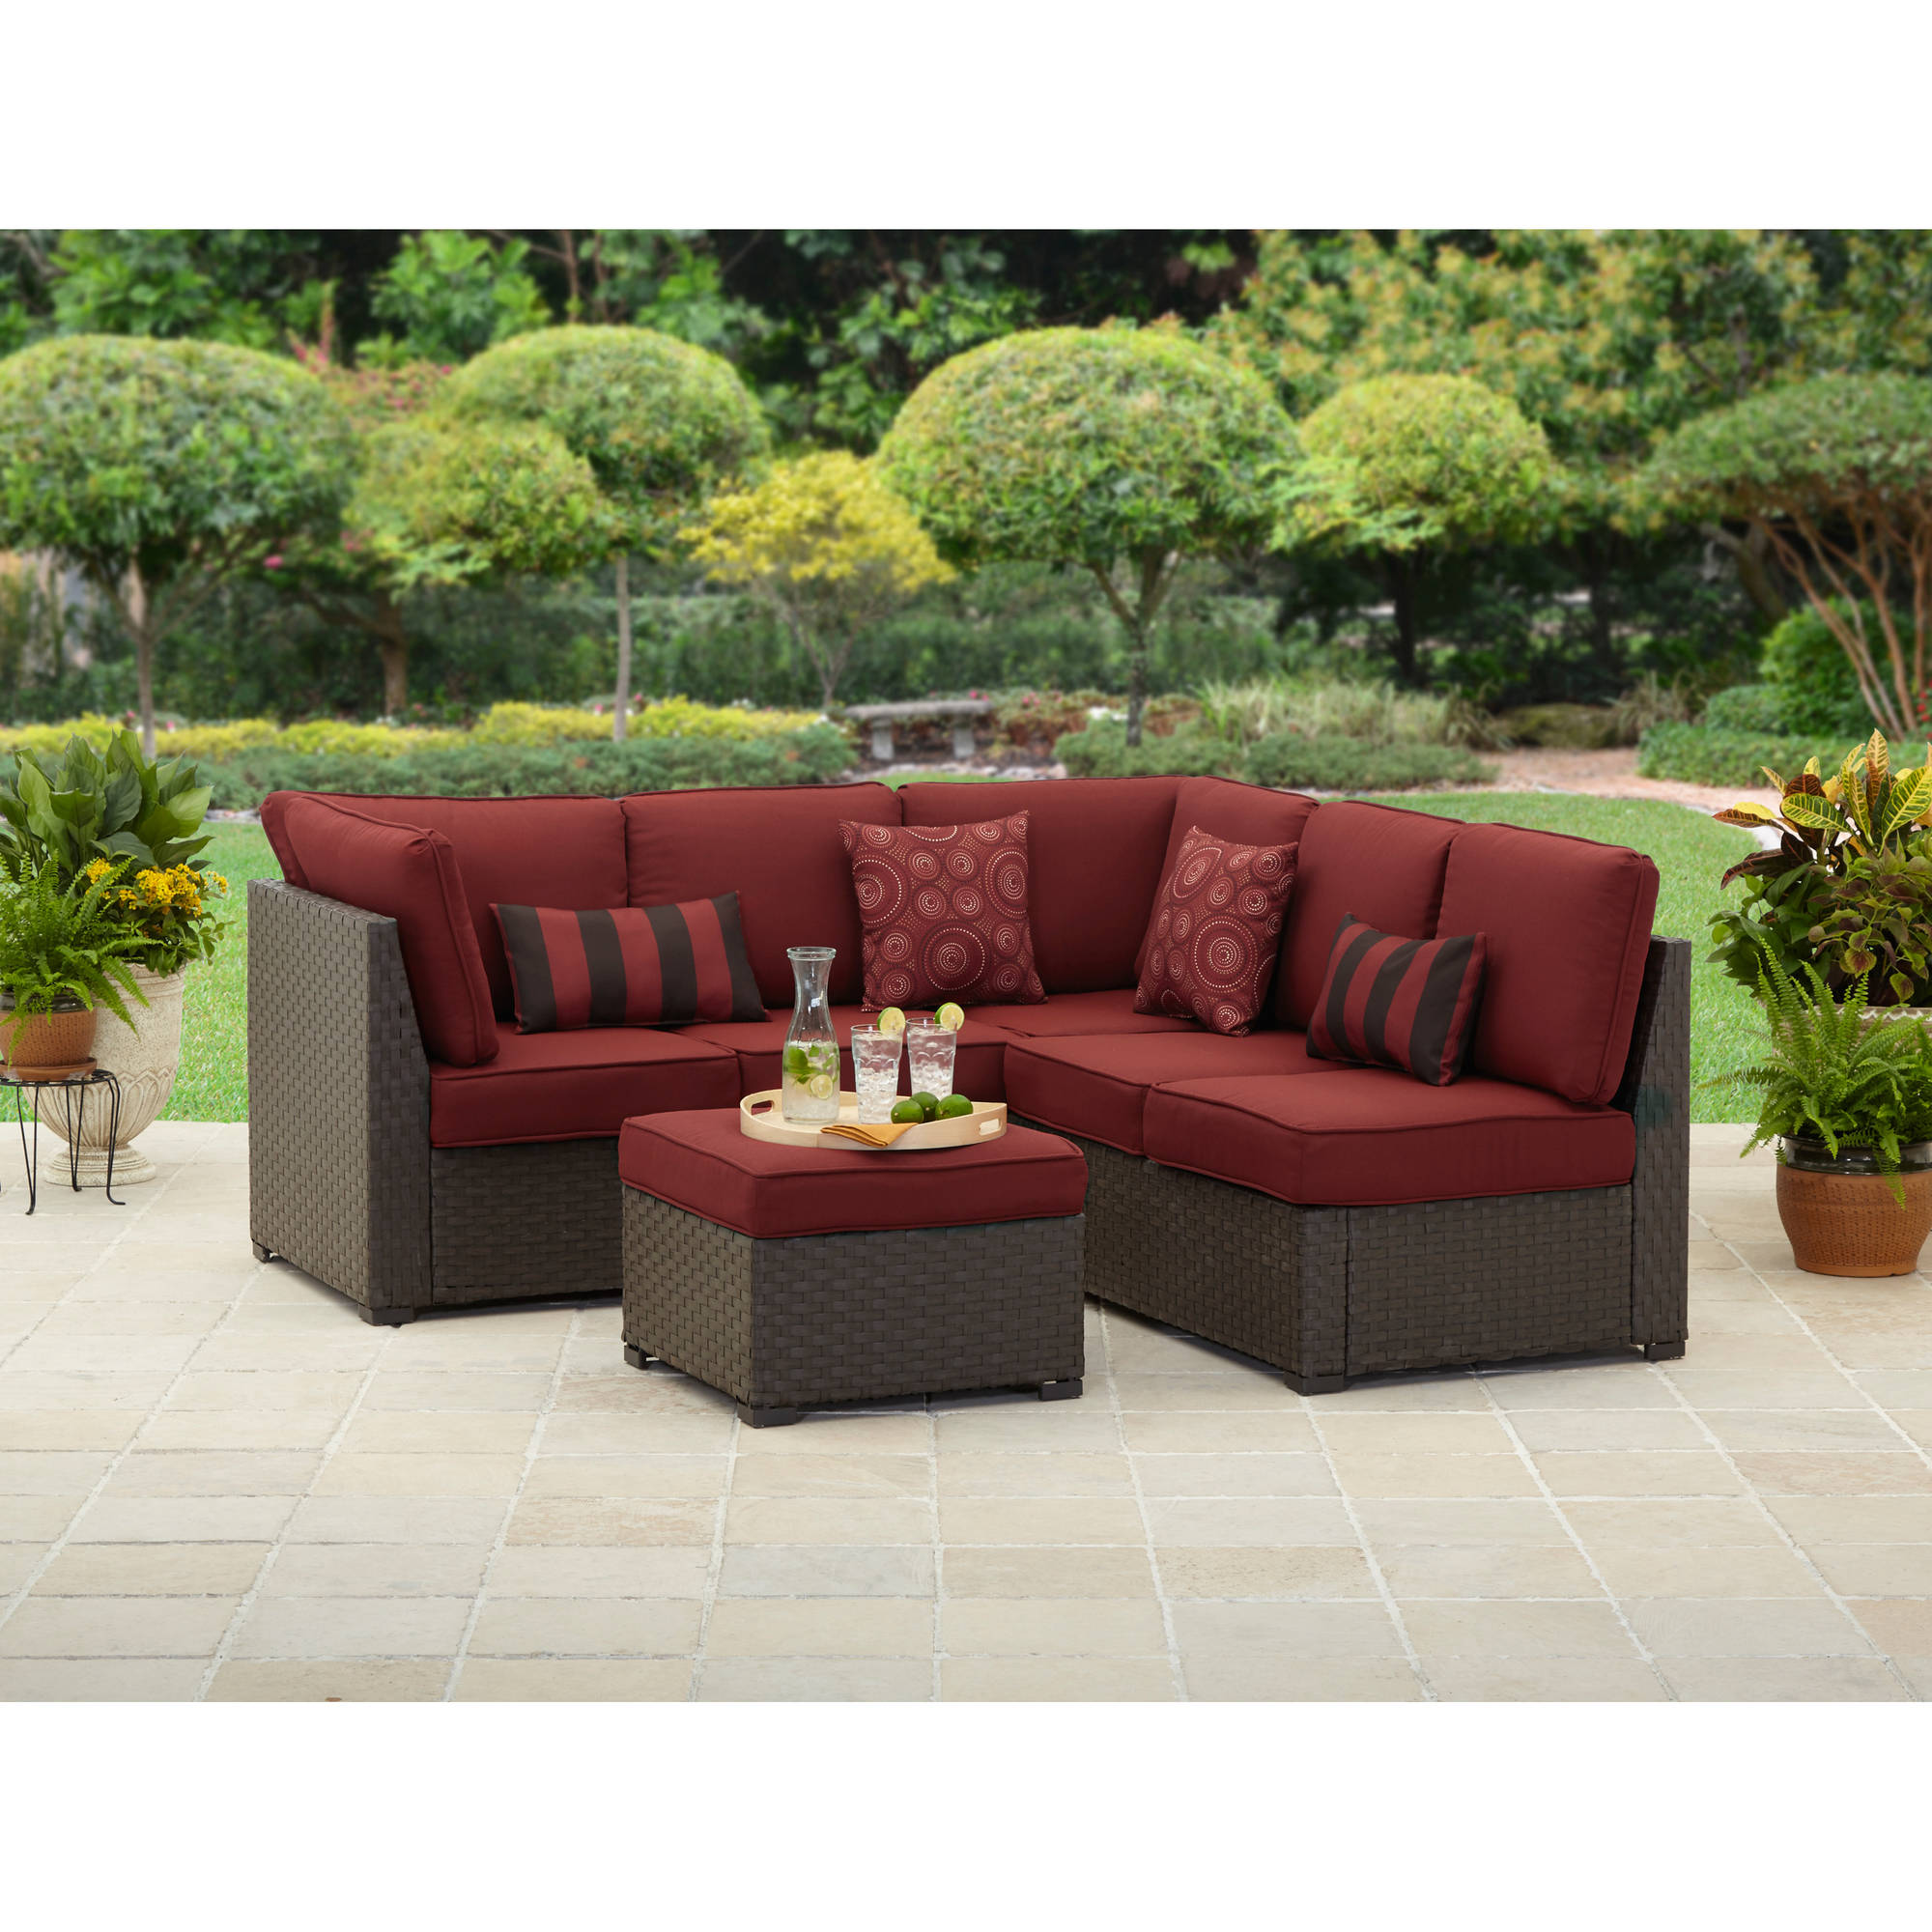 Details about Better Homes and Gardens Rush Valley 3-Piece Outdoor Sectional Sofa Set Seats  sc 1 st  eBay & Better Homes and Gardens Rush Valley 3-Piece Outdoor Sectional Sofa ...